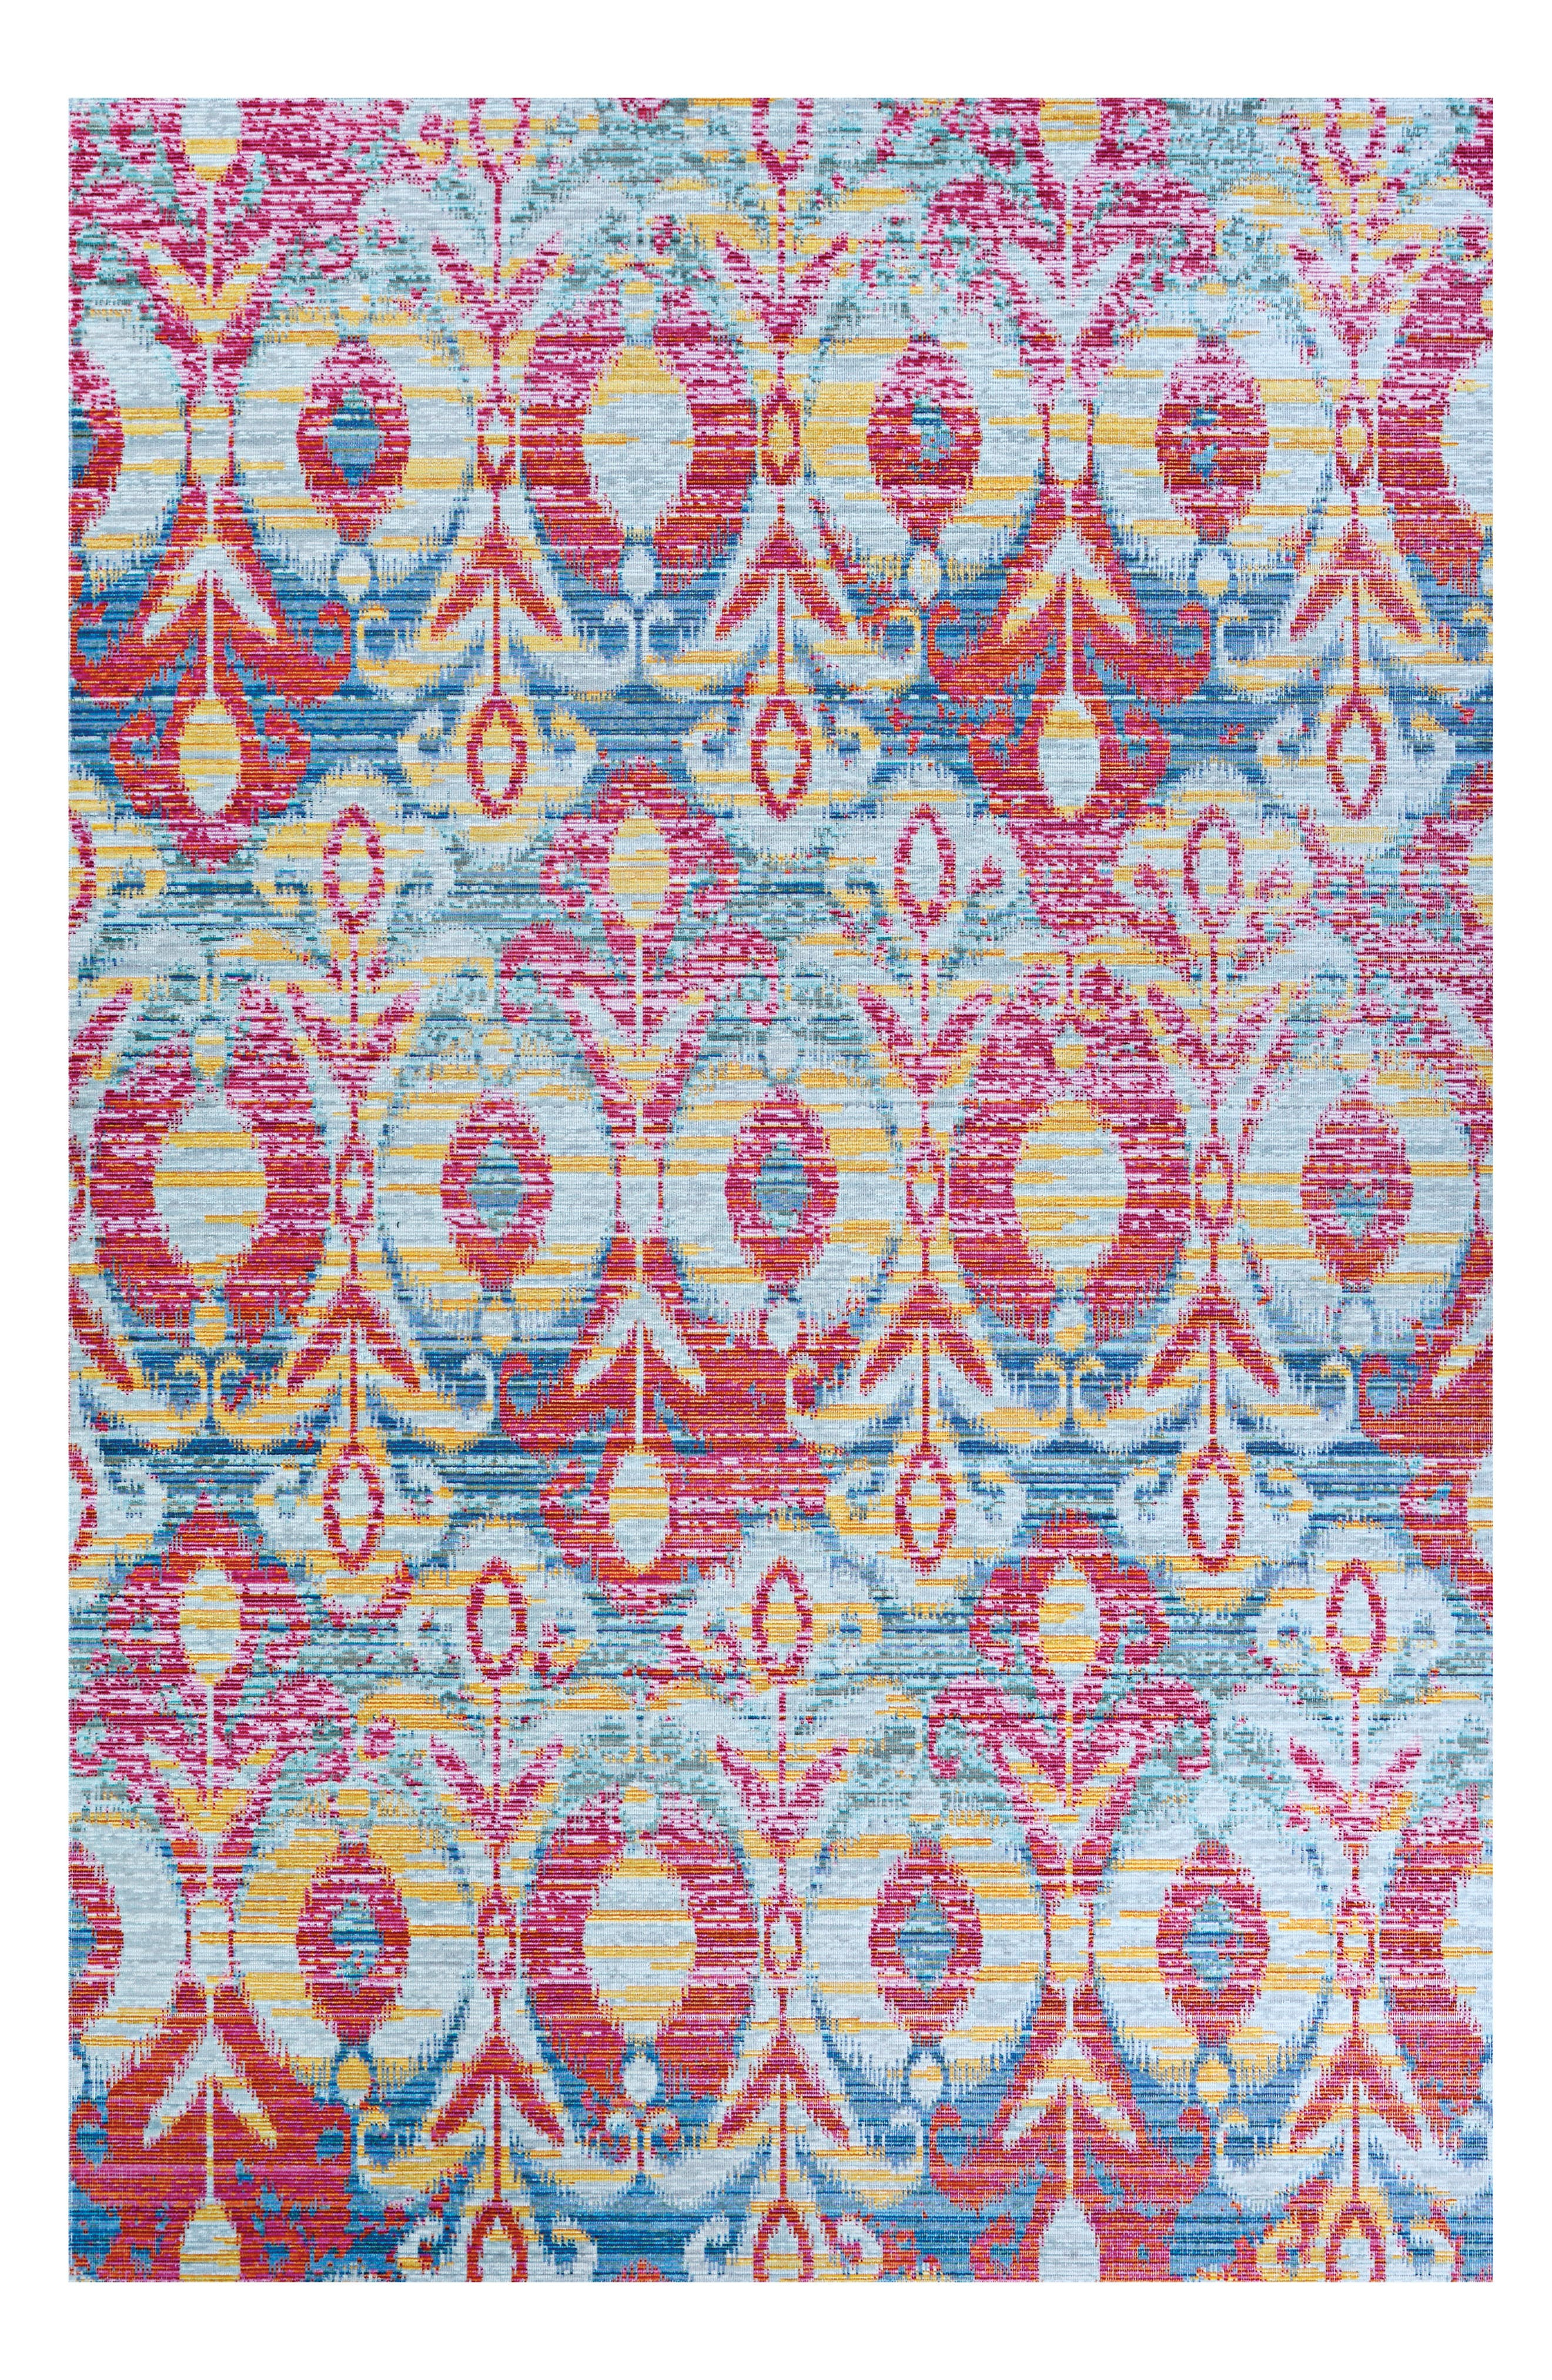 A vibrant motif adds eye-catching appeal to a lively rug woven from fade-resistant polypropylene, making it great for high-traffic areas both inside and outside. Style Name: Couristan Xanadu Toluca Indoor/outdoor Rug. Style Number: 5731916. Available in stores.